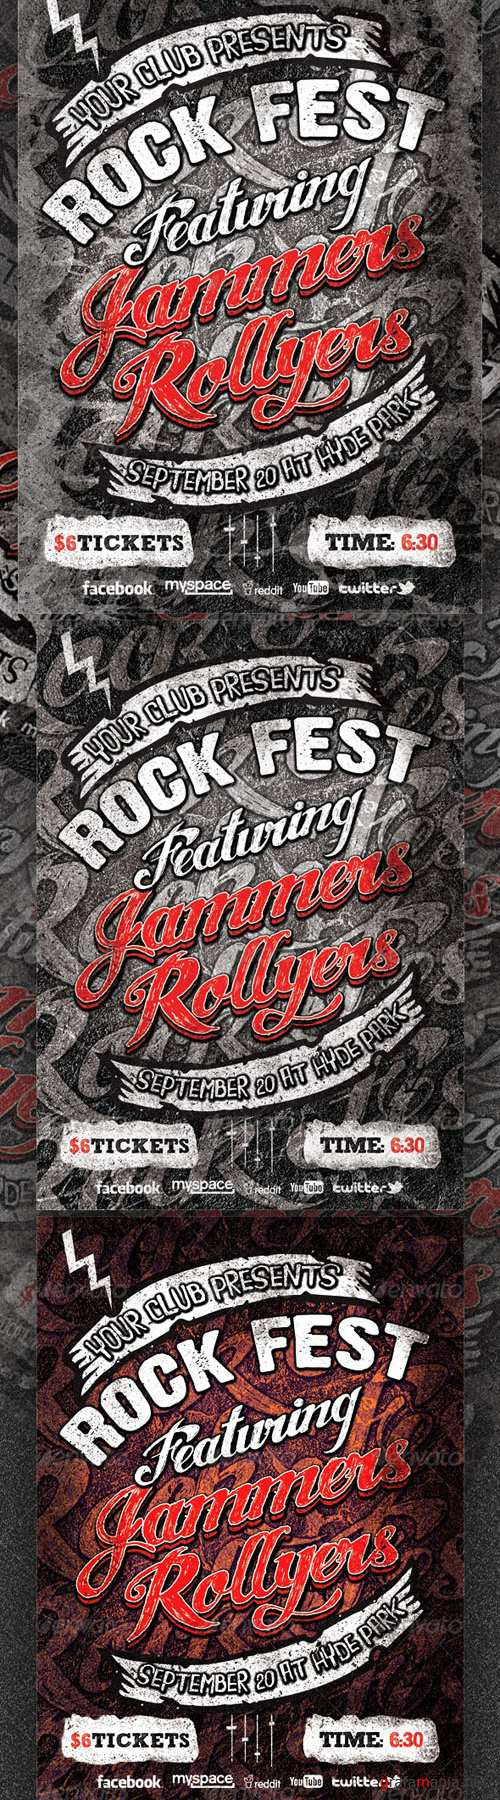 GraphicRiver - Rock Fest Typographic Flyer PSD Template 3009091